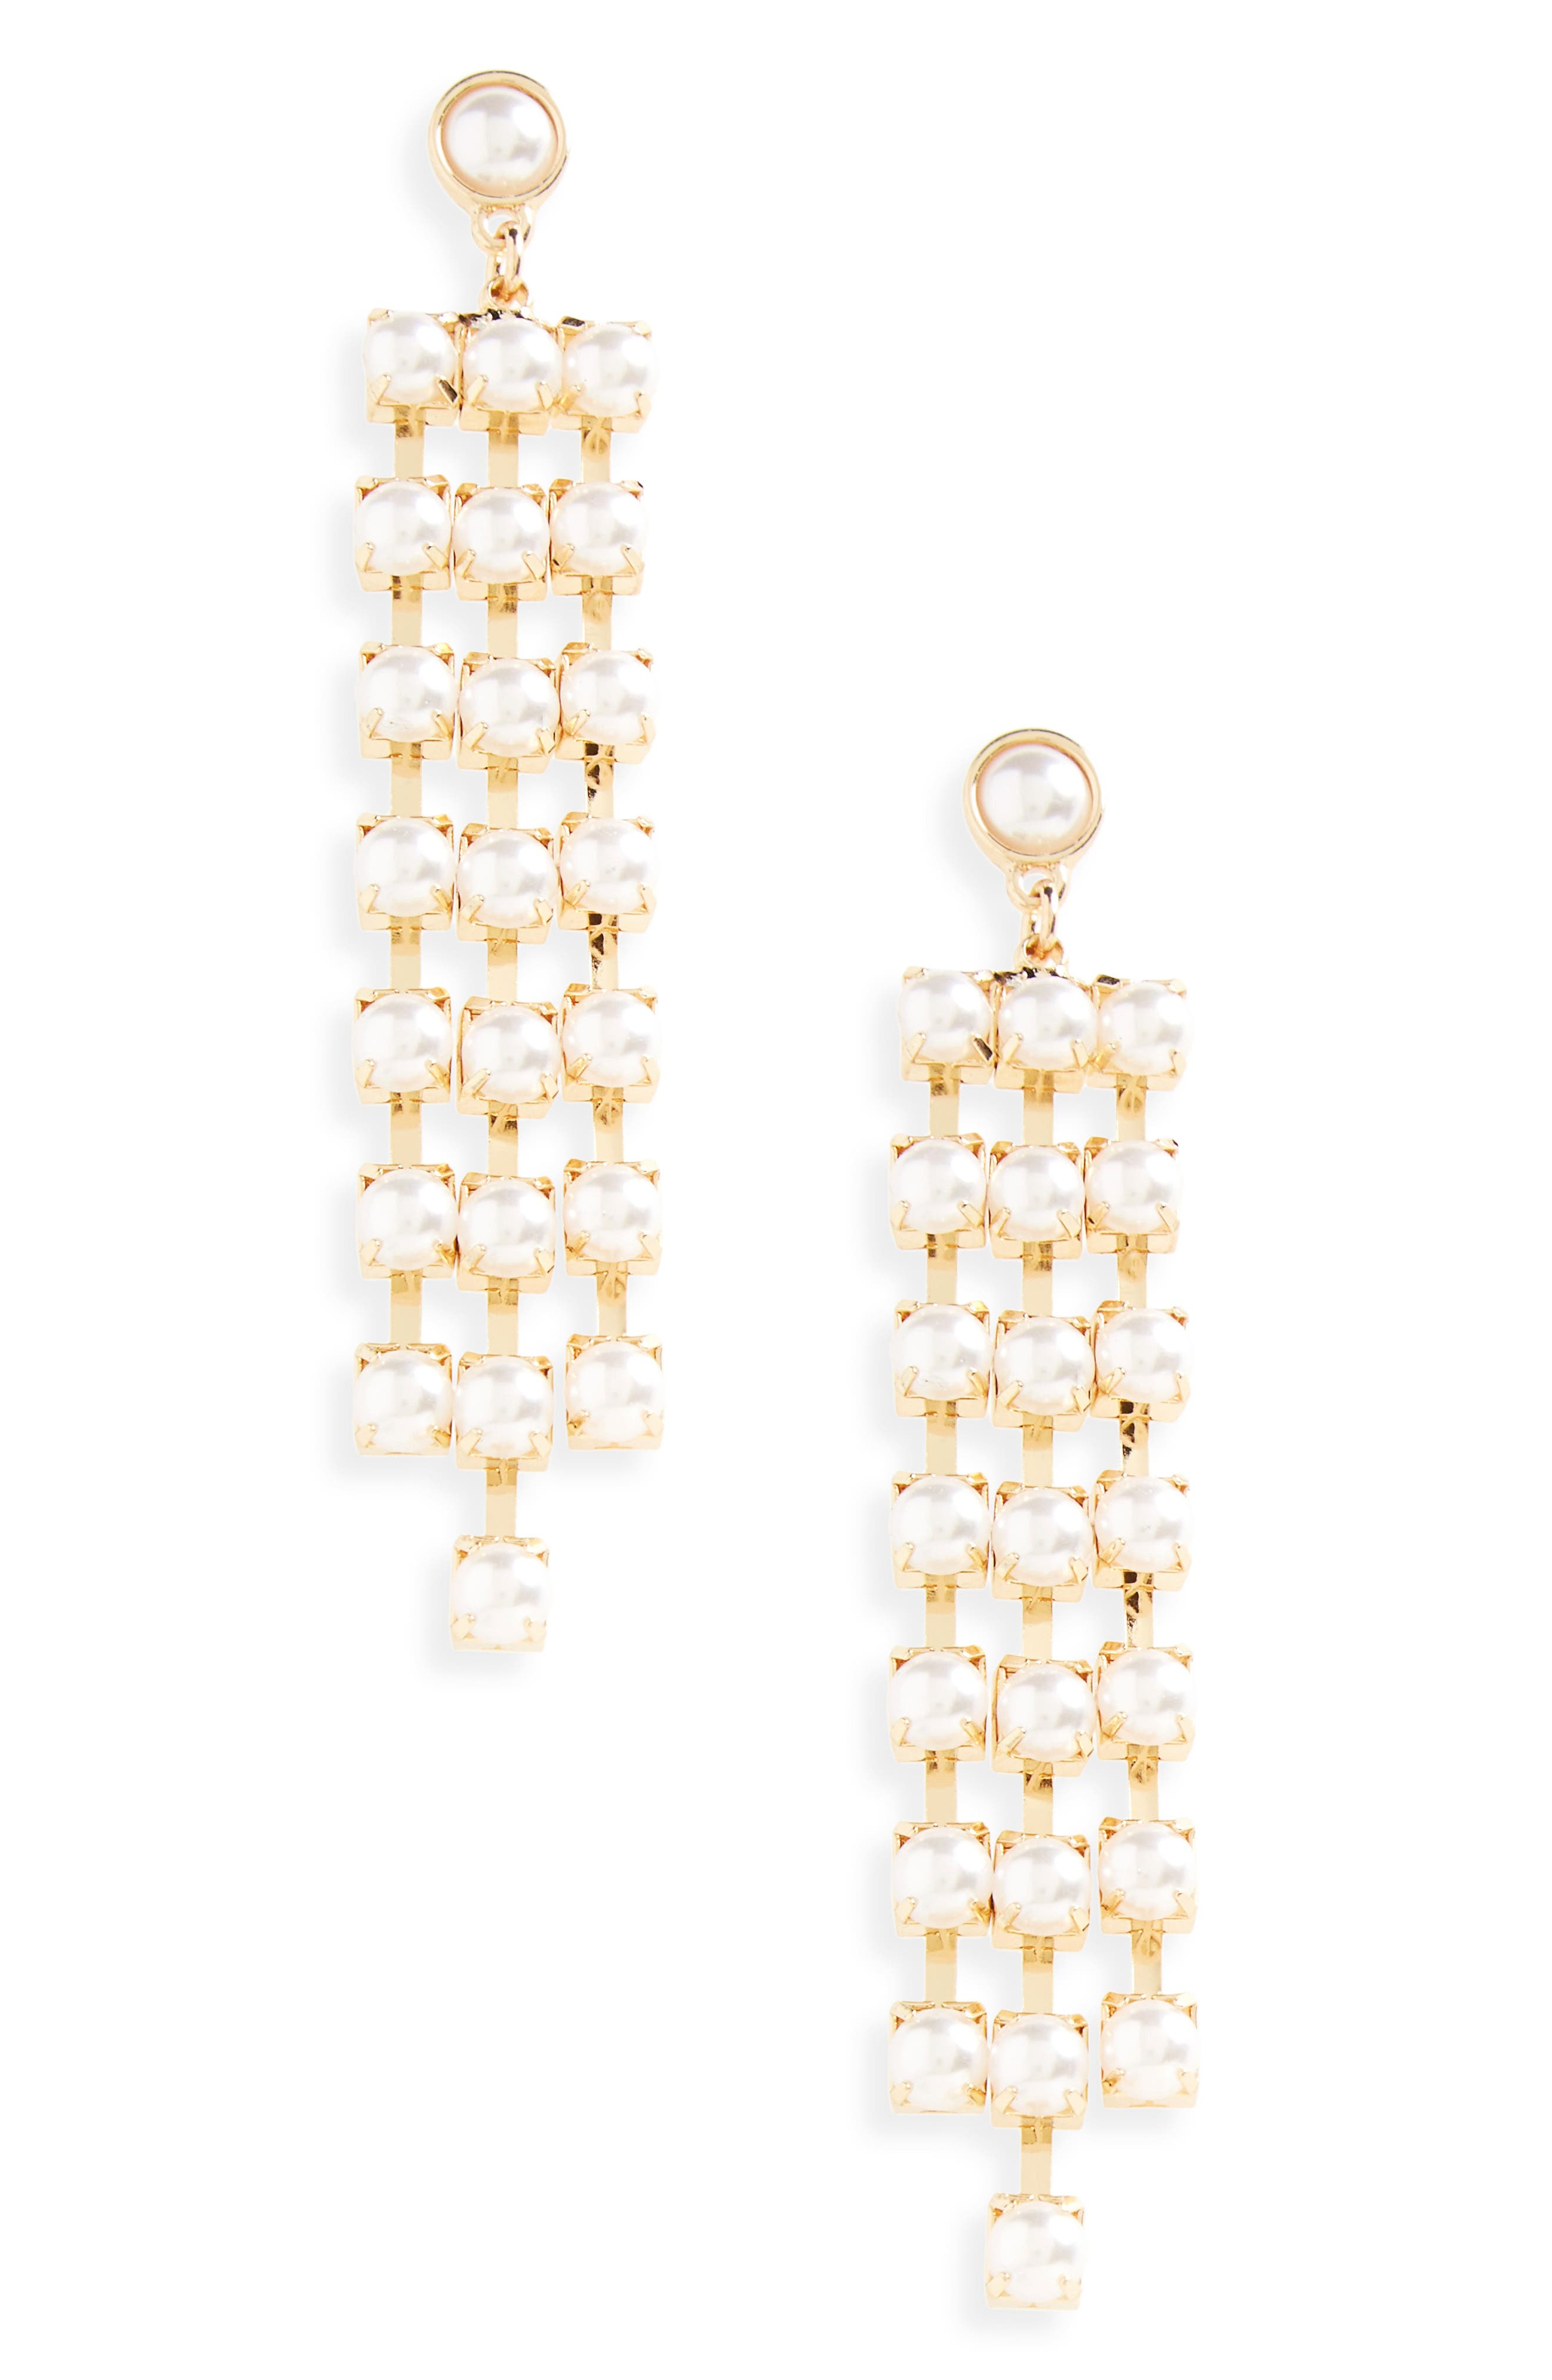 Imitation Pearl Chandelier Earrings,                         Main,                         color, Gold/ Pearl